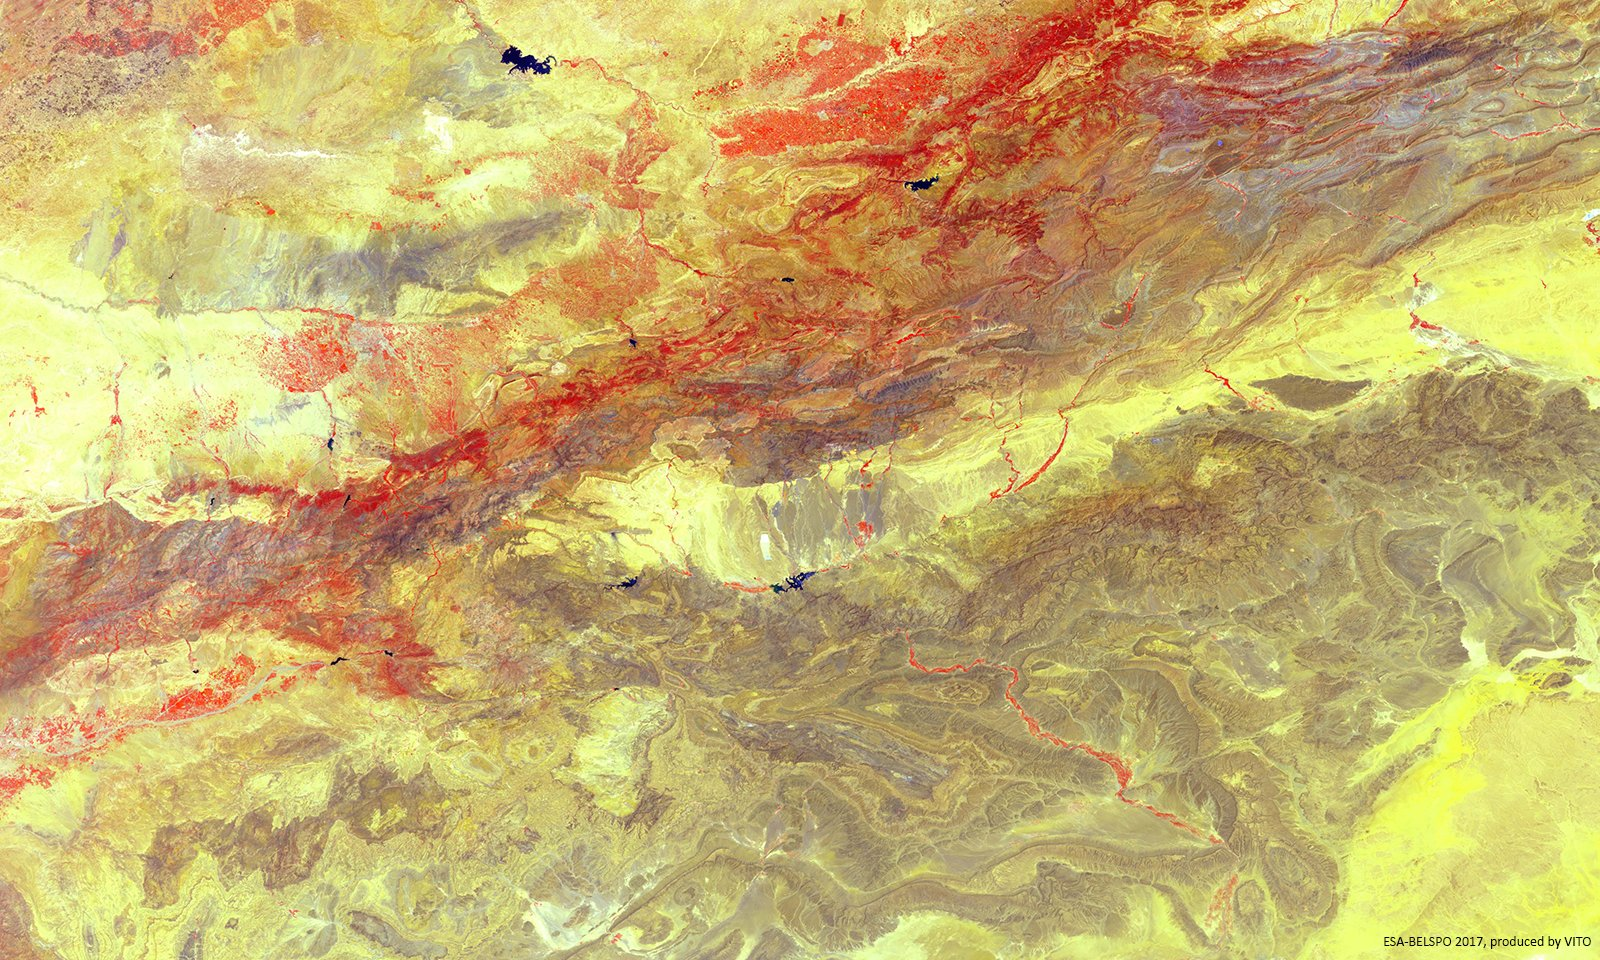 Today's Image of the Day comes courtesy of the European Space Agency (ESA) and features a look at North Africa's High Atlas mountain range.